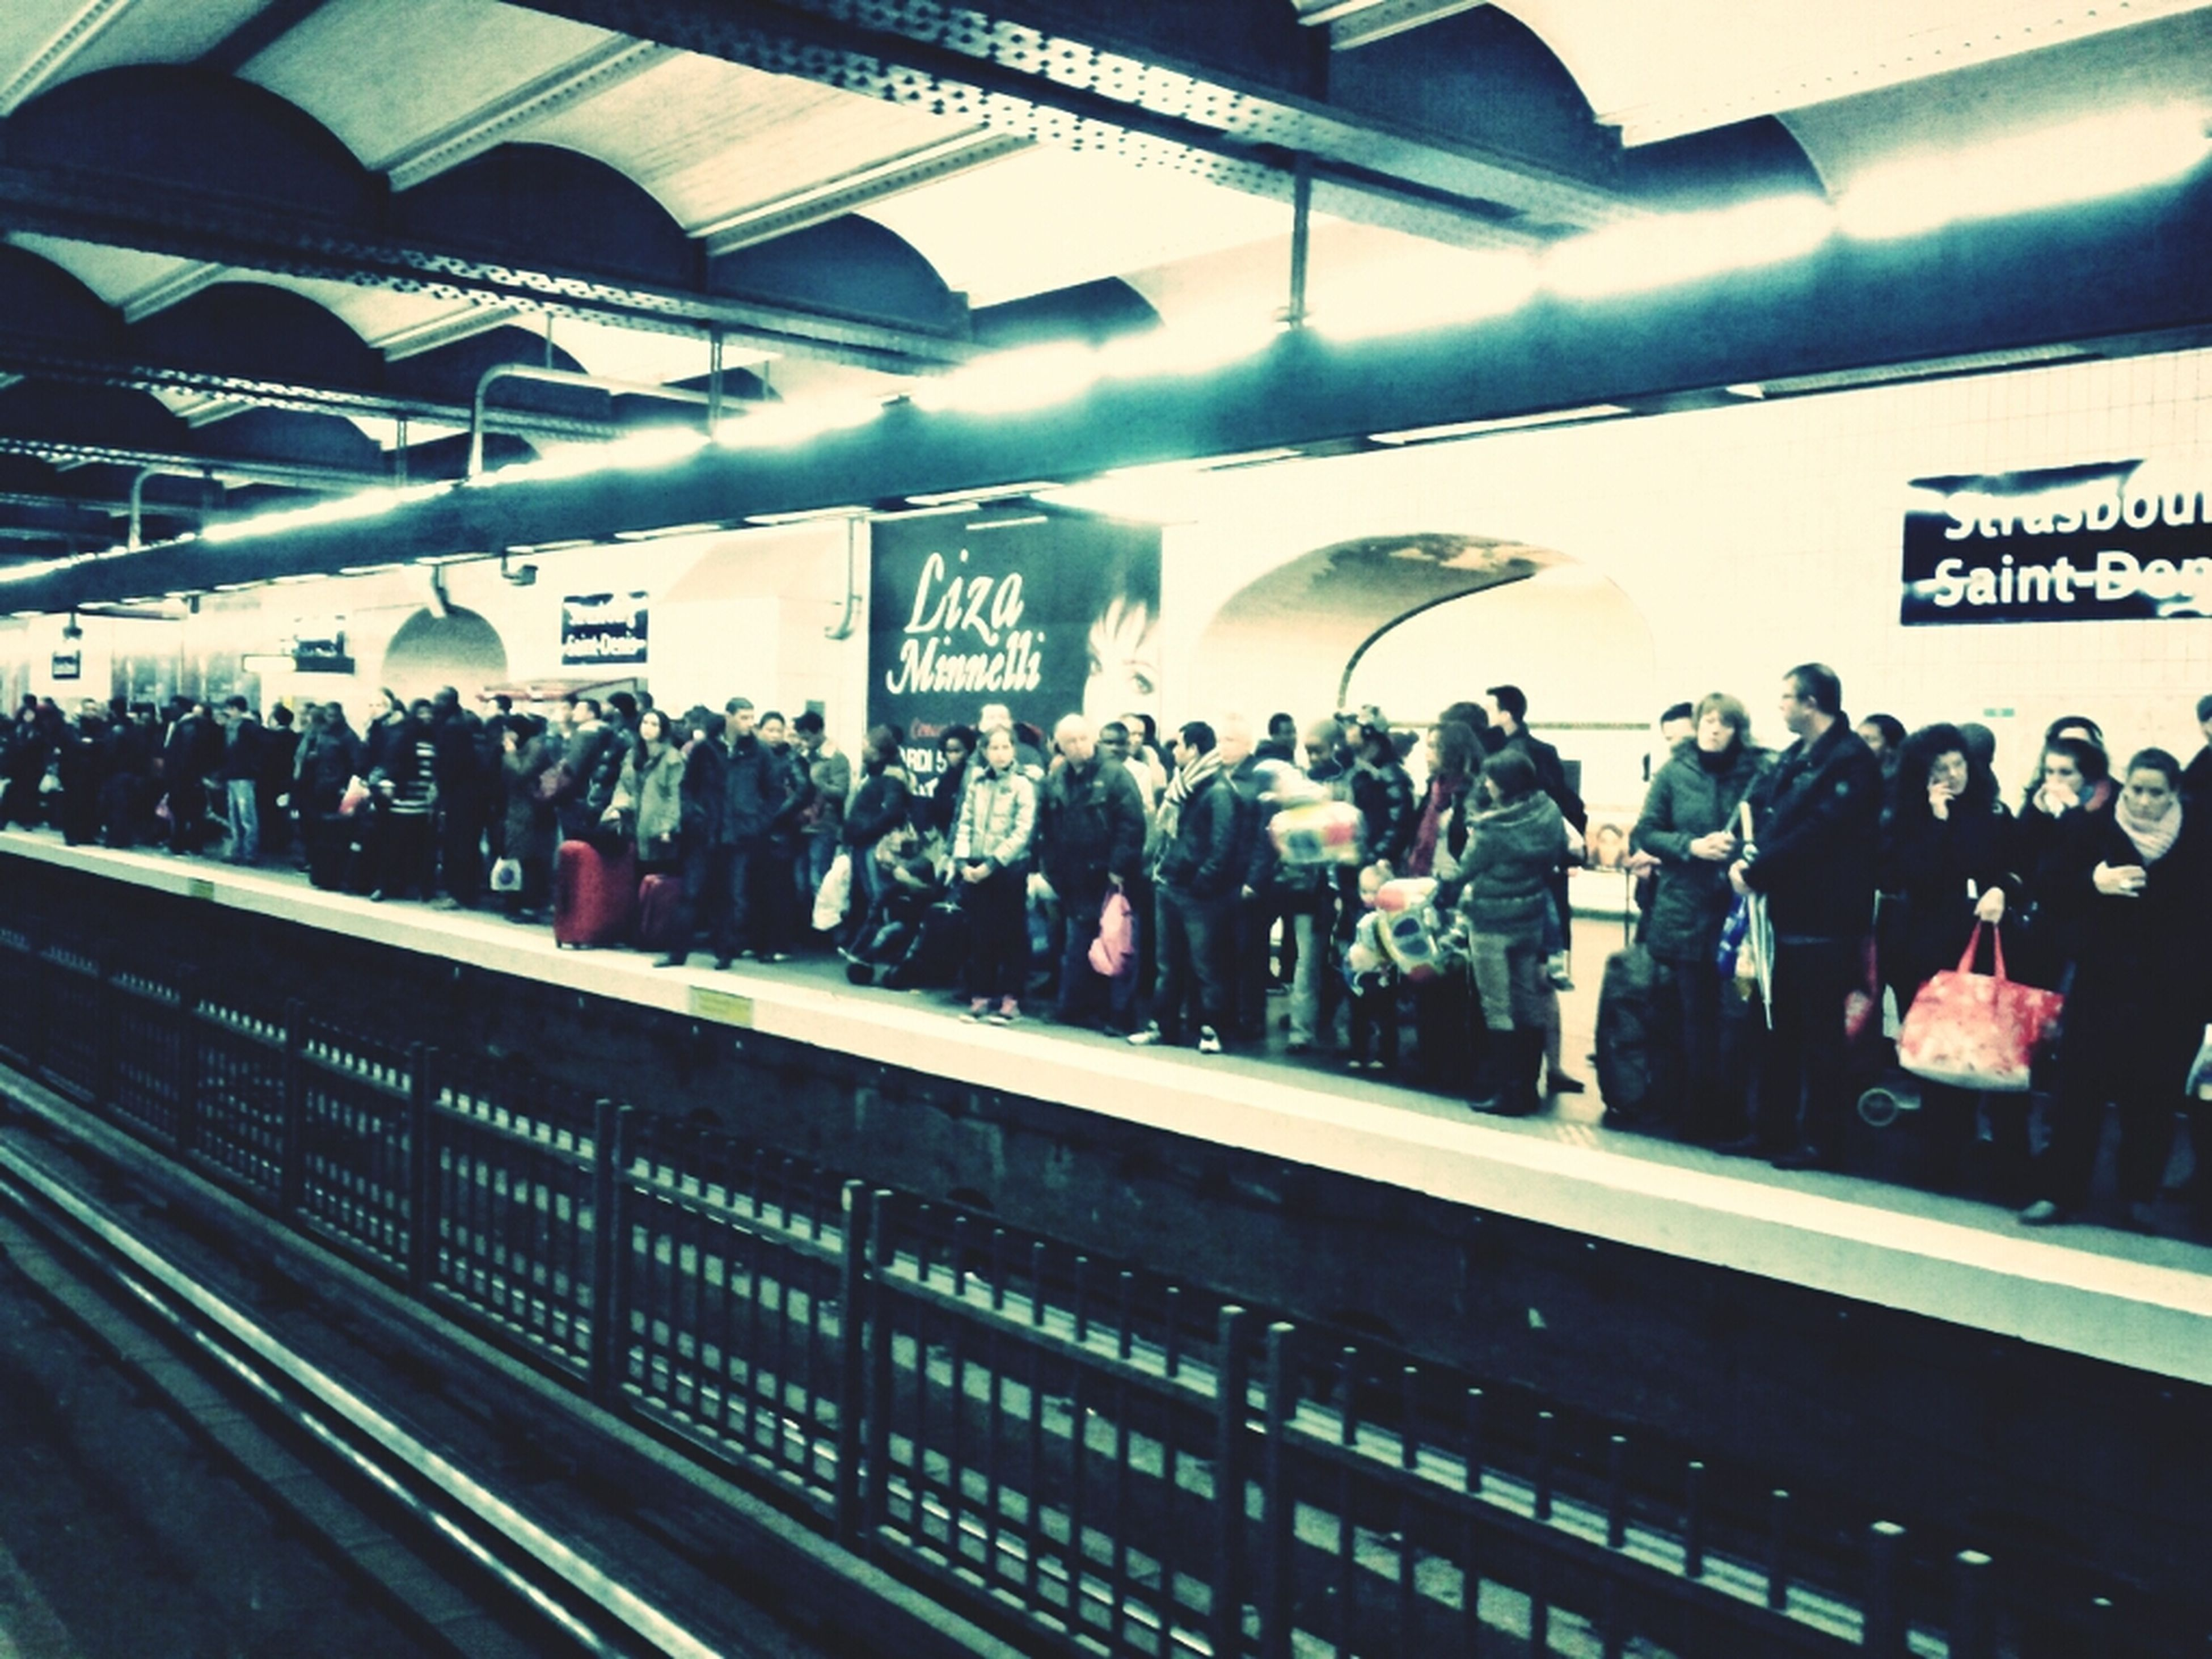 indoors, text, railroad station, large group of people, men, public transportation, person, lifestyles, illuminated, rail transportation, store, subway station, railroad station platform, transportation, retail, shopping mall, ceiling, western script, subway